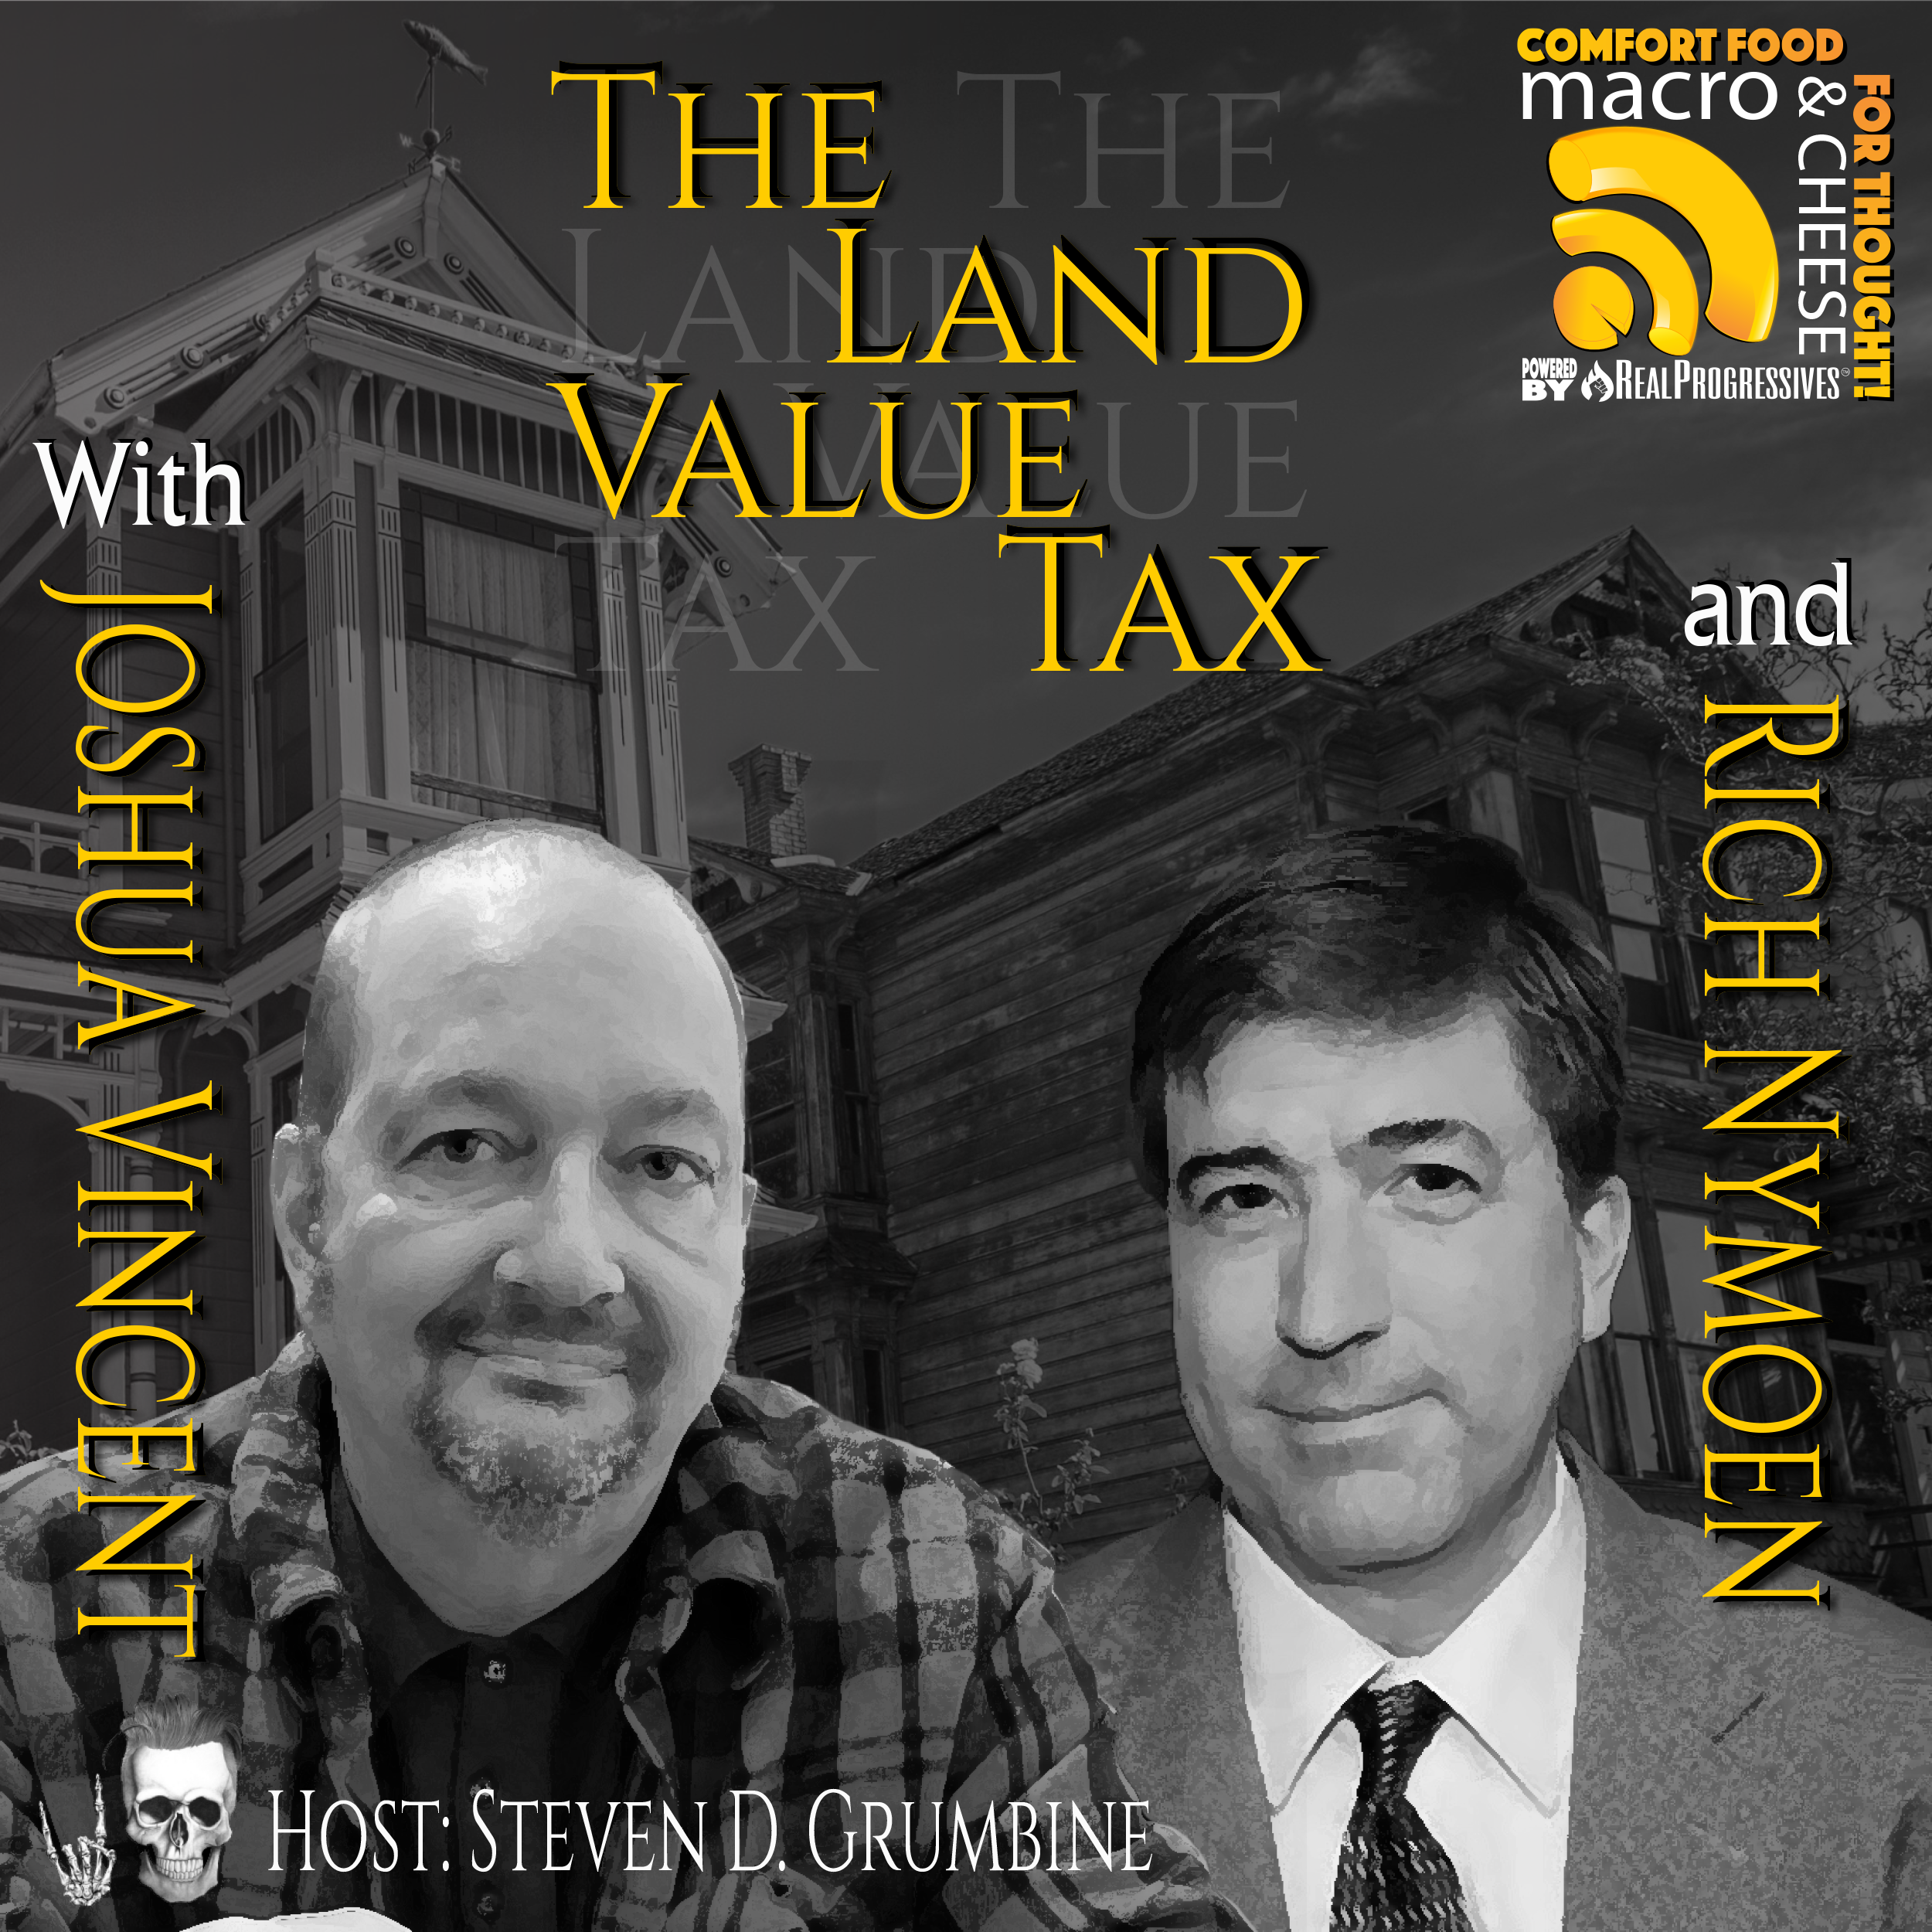 The Land Value Tax with Joshua Vincent and Rich Nymoen